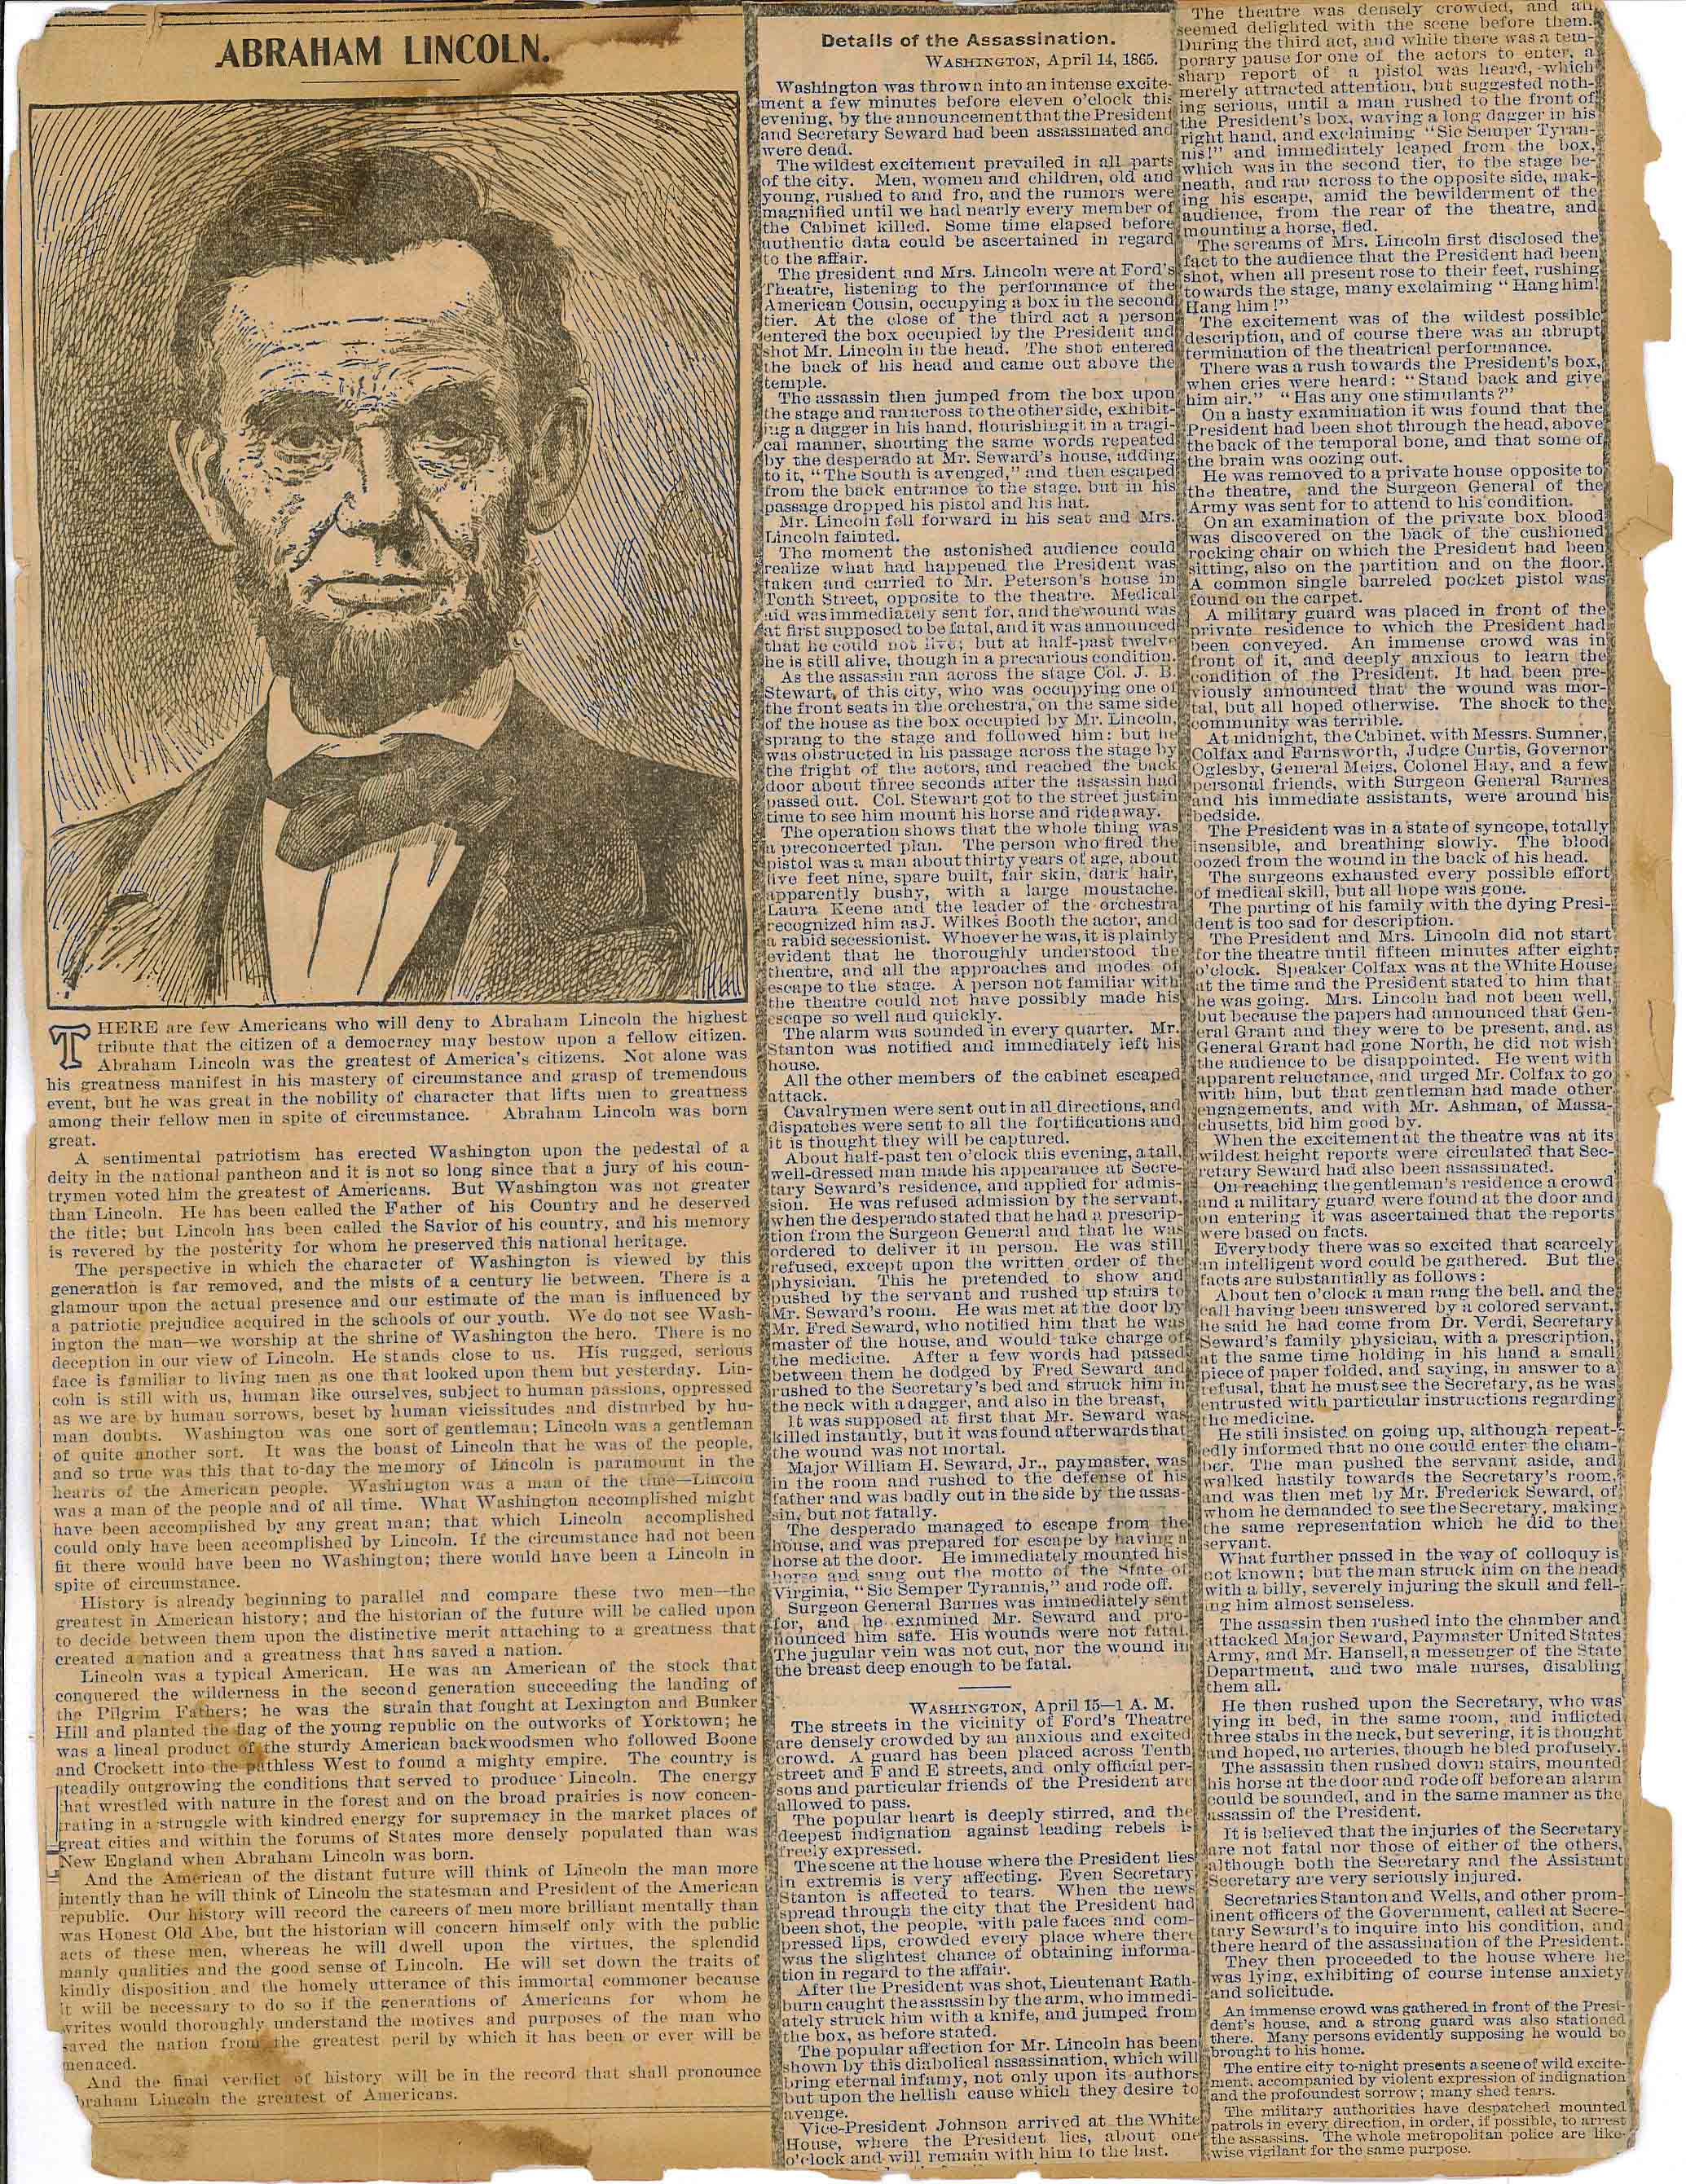 Newspaper Clipping – Details of Assassination pt. 1